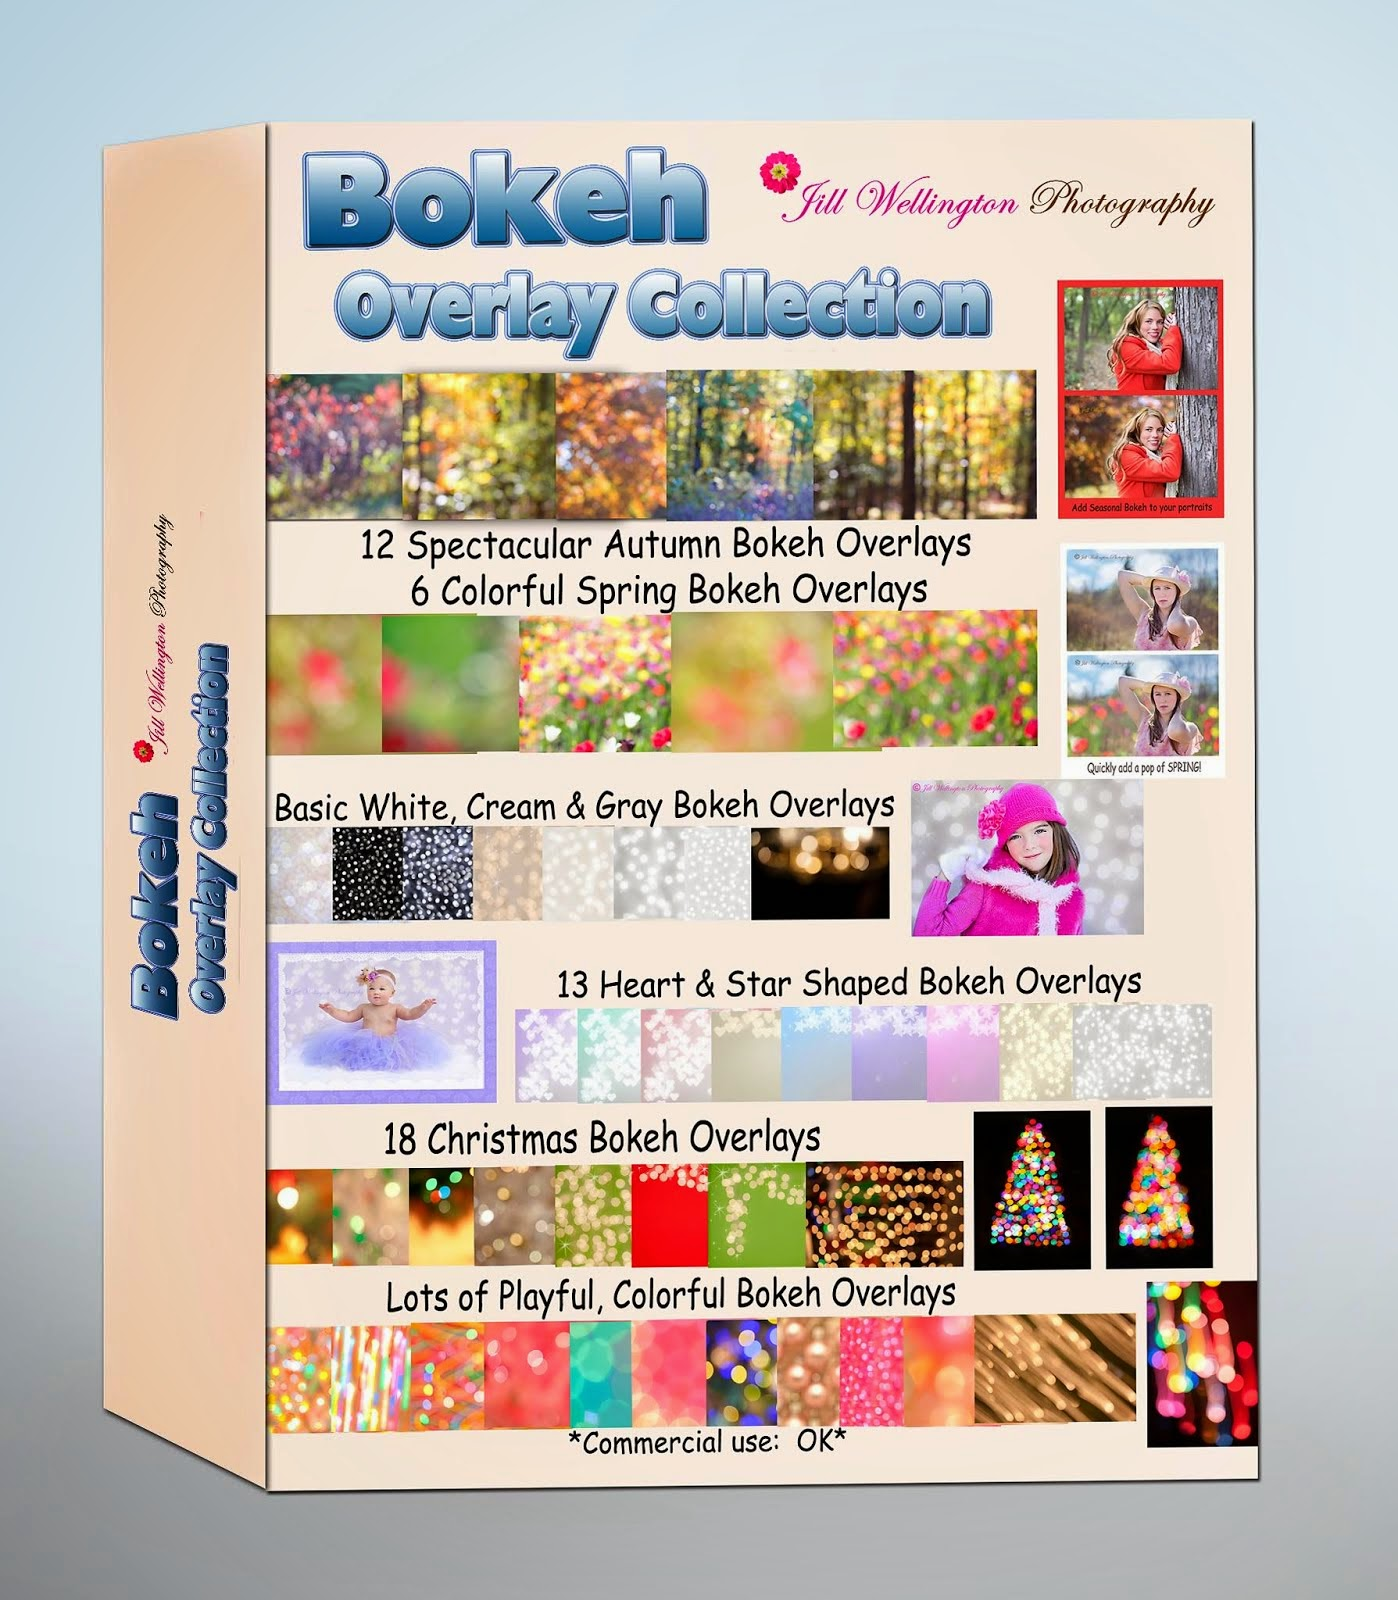 NEW!  Purchase my Jill Wellington Photography Bokeh Overlay Collection